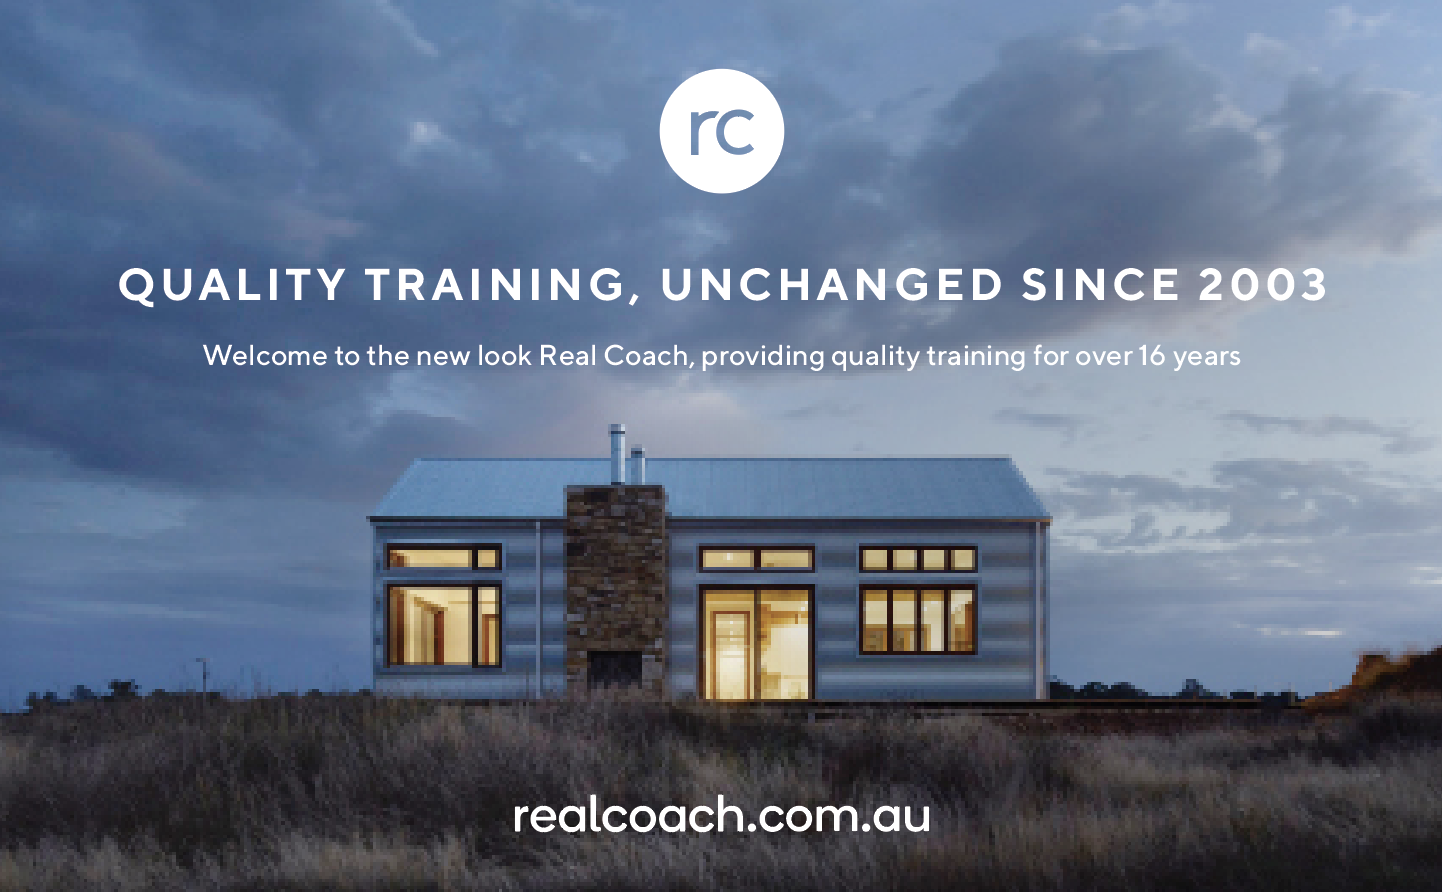 Real Coach - Quality Real Estate Training for over 16 years